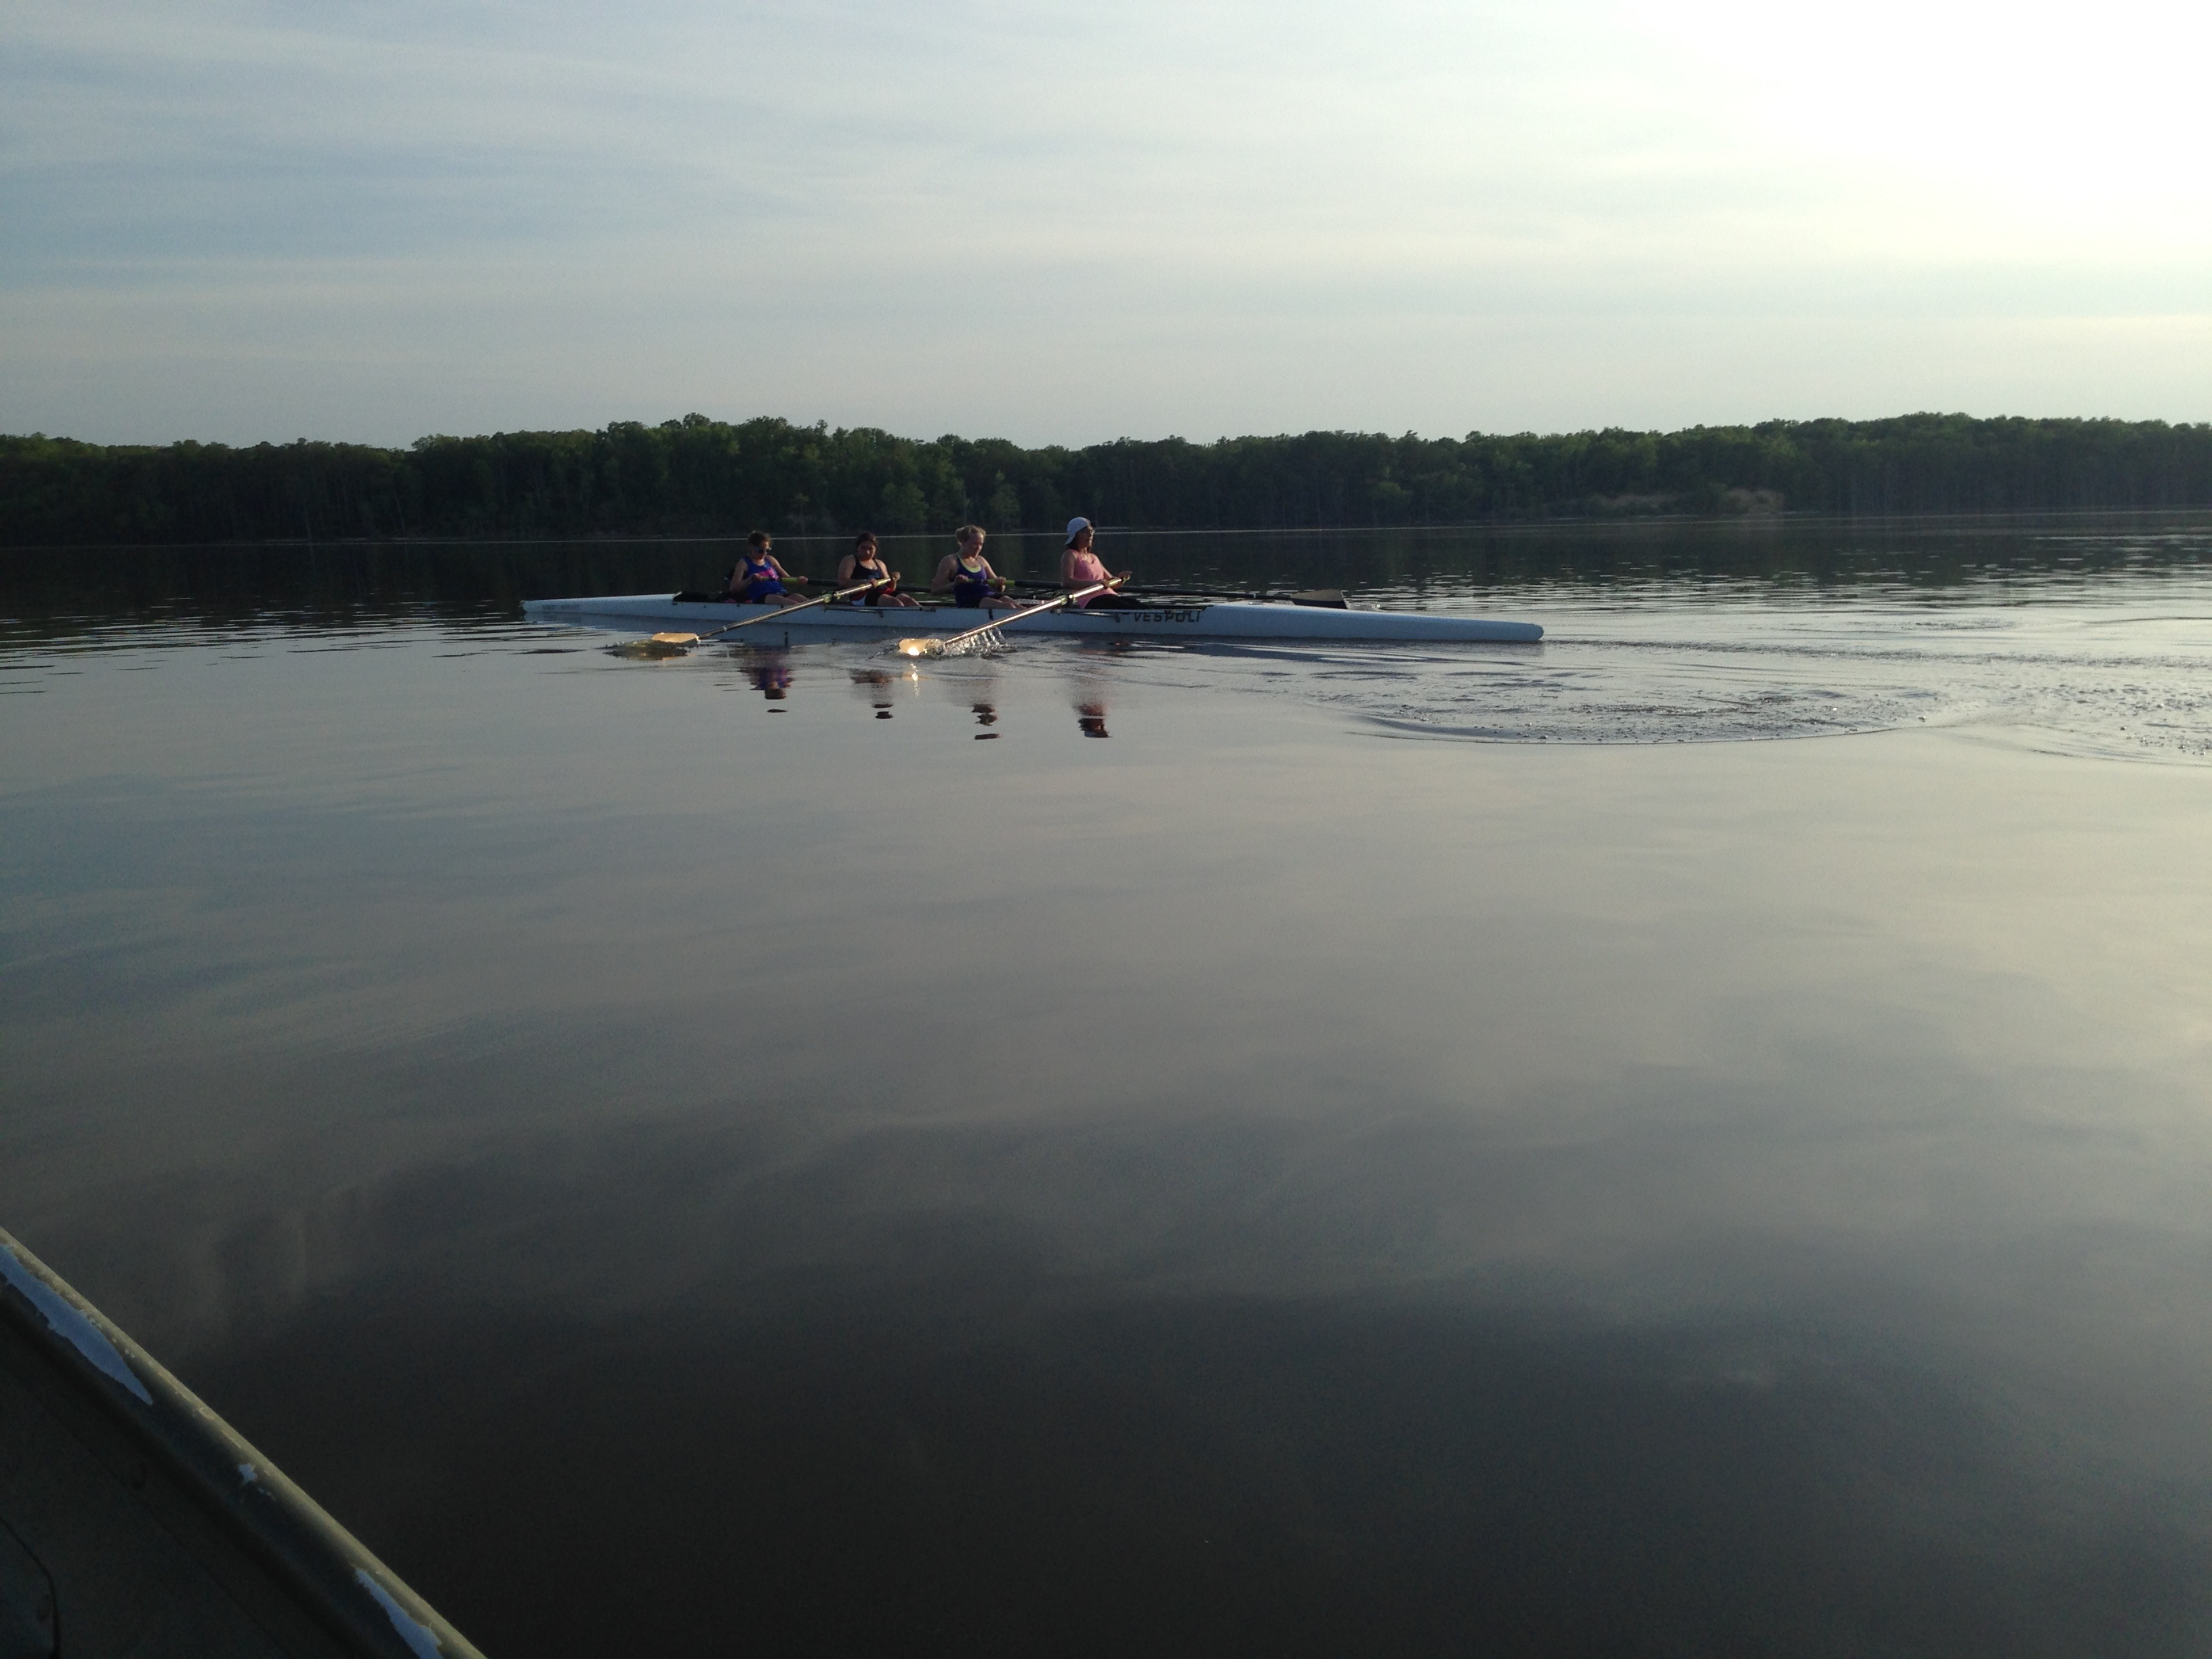 The Novice Women practing before the Dad Vail Regatta.